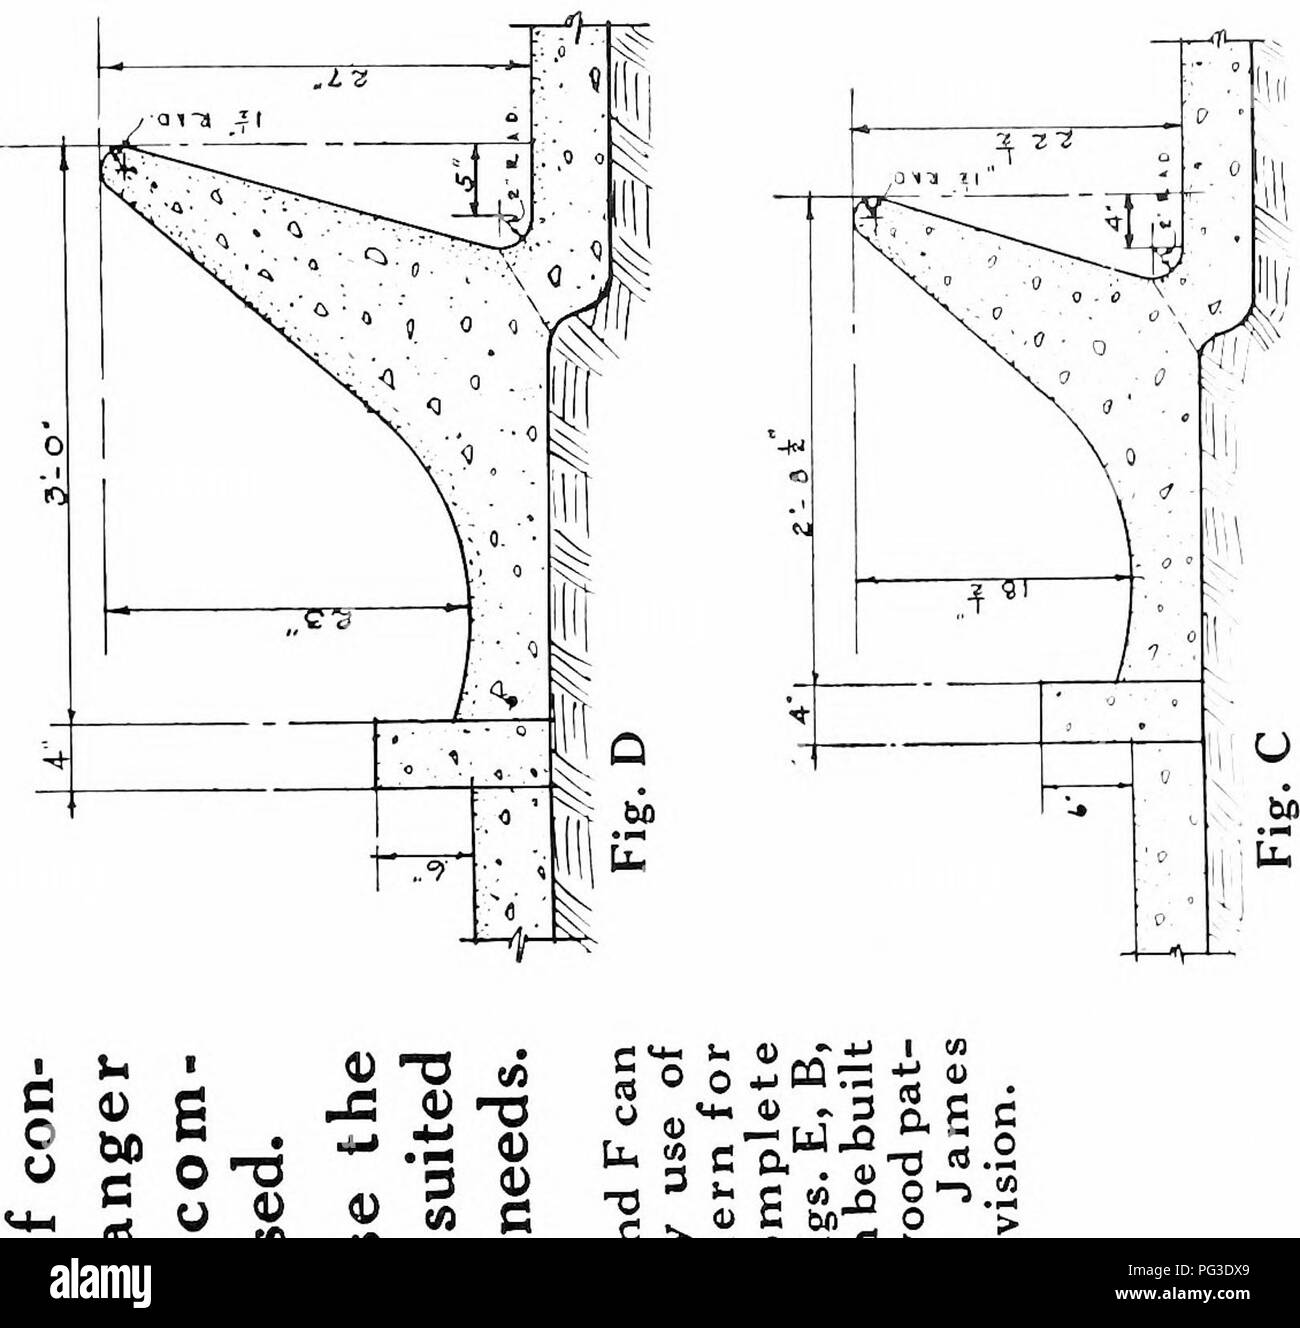 """. The James way : a book showing how to build and equip a practical up to date dairy barn. Barns; Barns; Dairy barns; Dairy barns; Dairying. Q,_S fl*^ pfi-"""" ? «L3_'""""M-aw-,W) >» D O Q QJ « [T-"""" g 5 « 5 I. """"- <s. Please note that these images are extracted from scanned page images that may have been digitally enhanced for readability - coloration and appearance of these illustrations may not perfectly resemble the original work.. James Manufacturing Co. Fort Atkinson, Wis. : - Stock Image"""